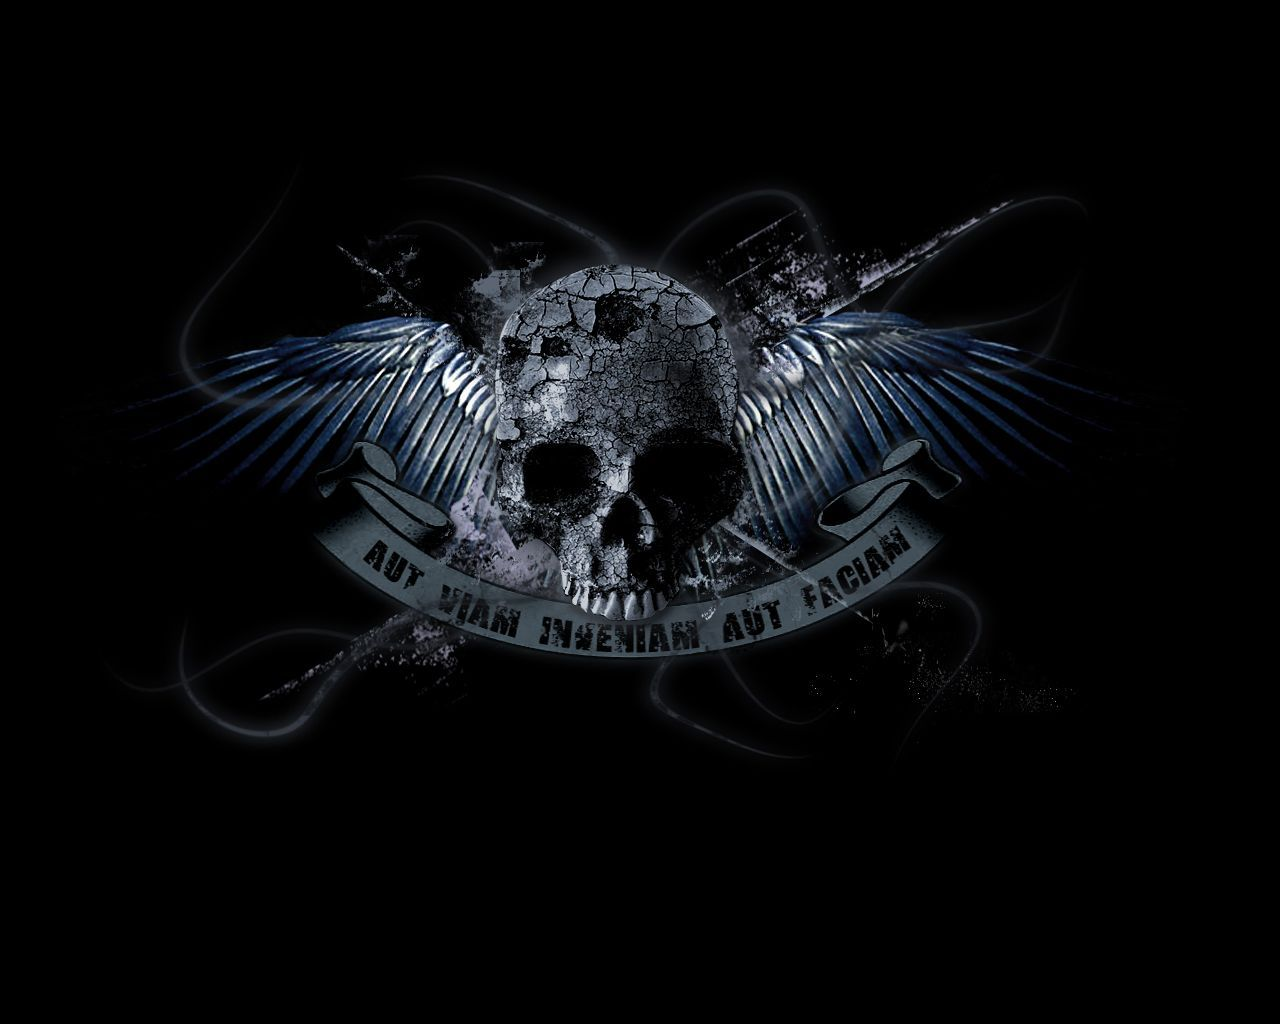 Skull With Wings Wallpapers Top Free Skull With Wings